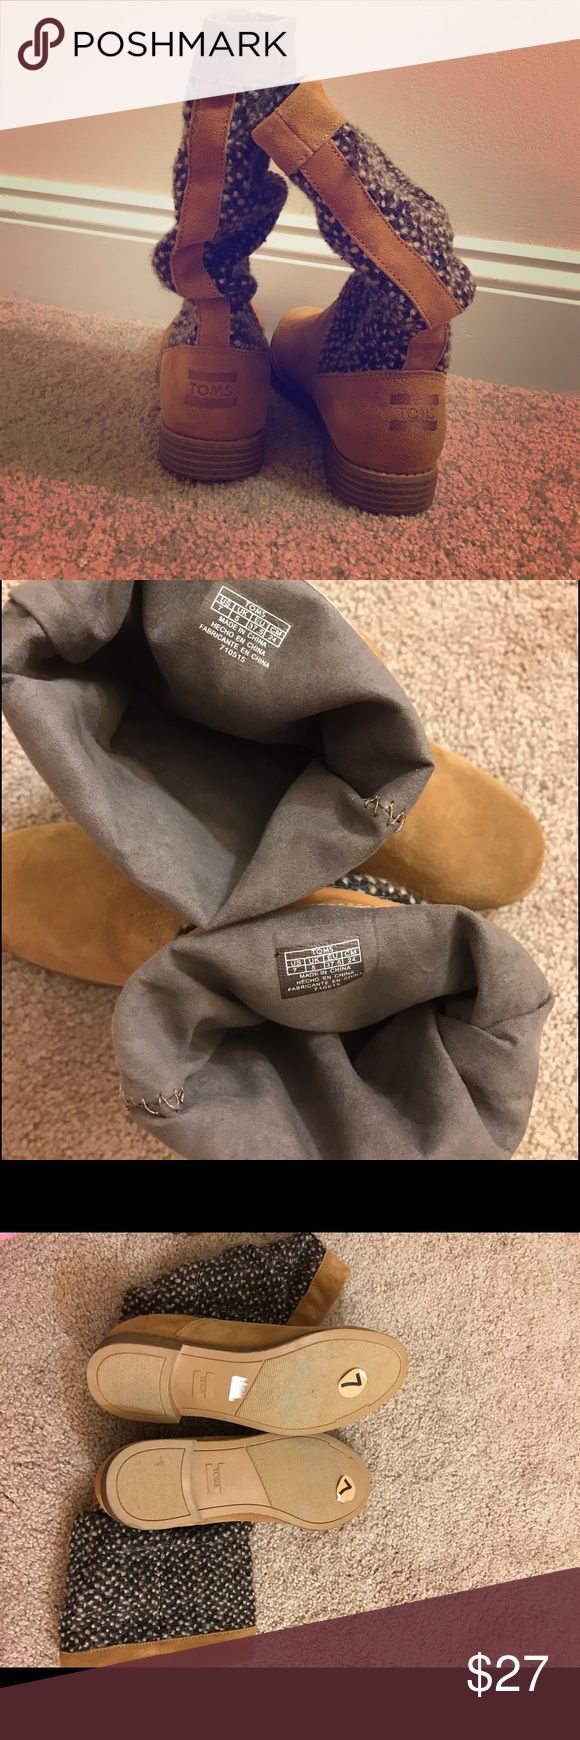 Toms boots tan. Suede textile mix Toms boots. Like new. Check base of the boots to see the slight scruffs. TOMS Shoes Winter & Rain Boots